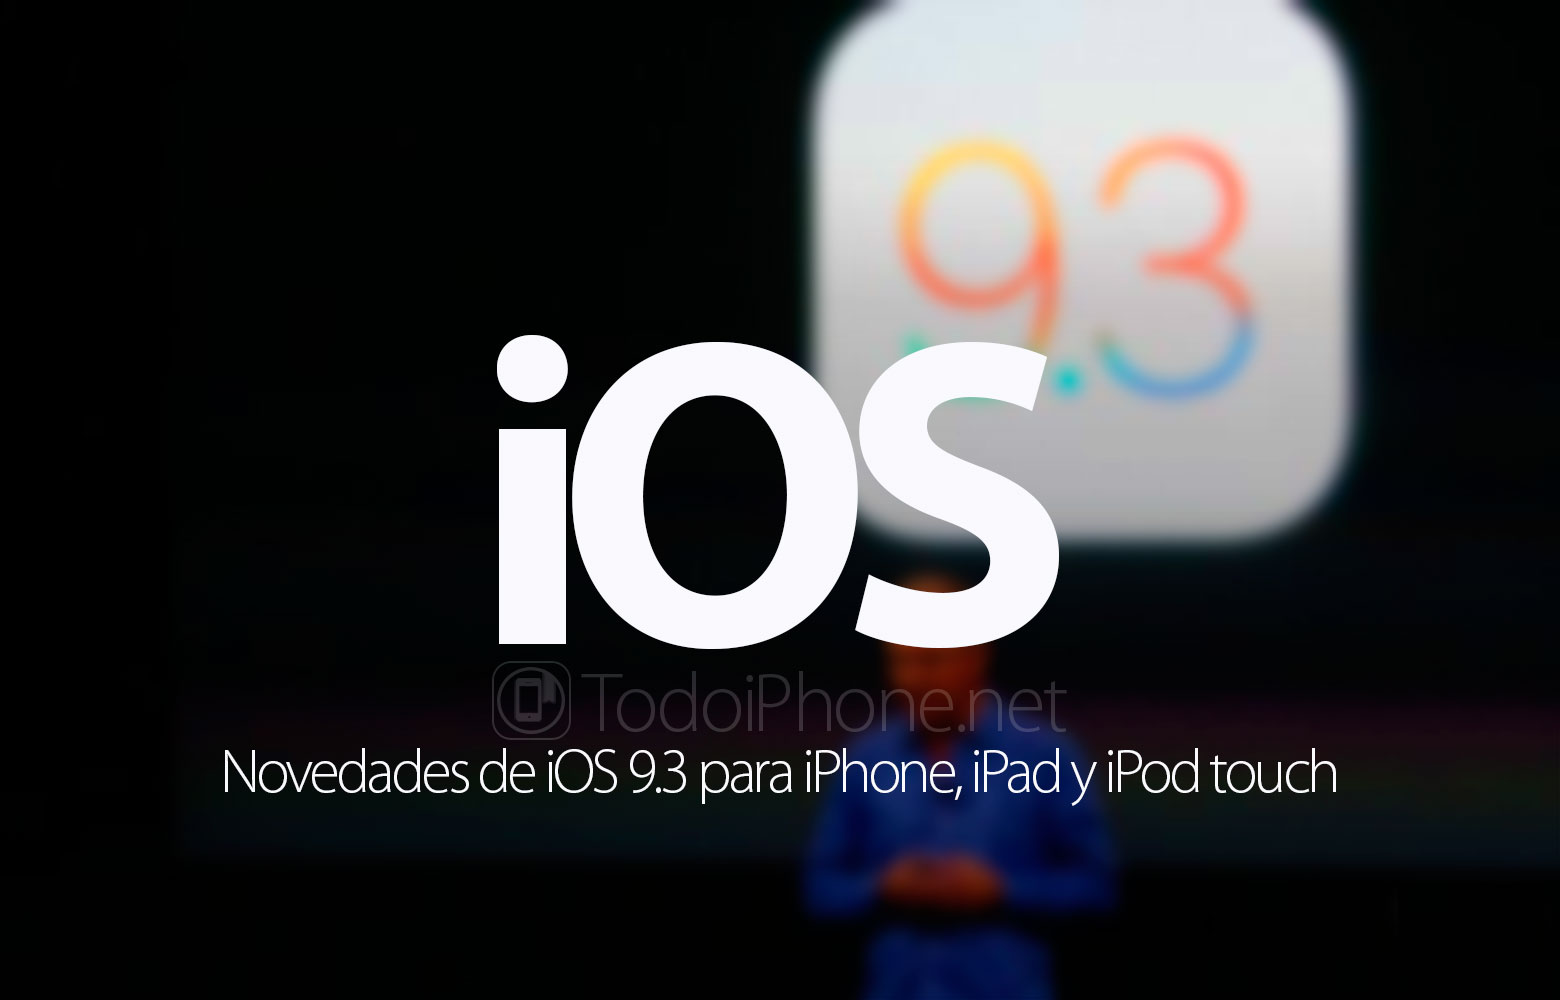 novedades-ios-9-3-iphone-ipad-ipod-touch